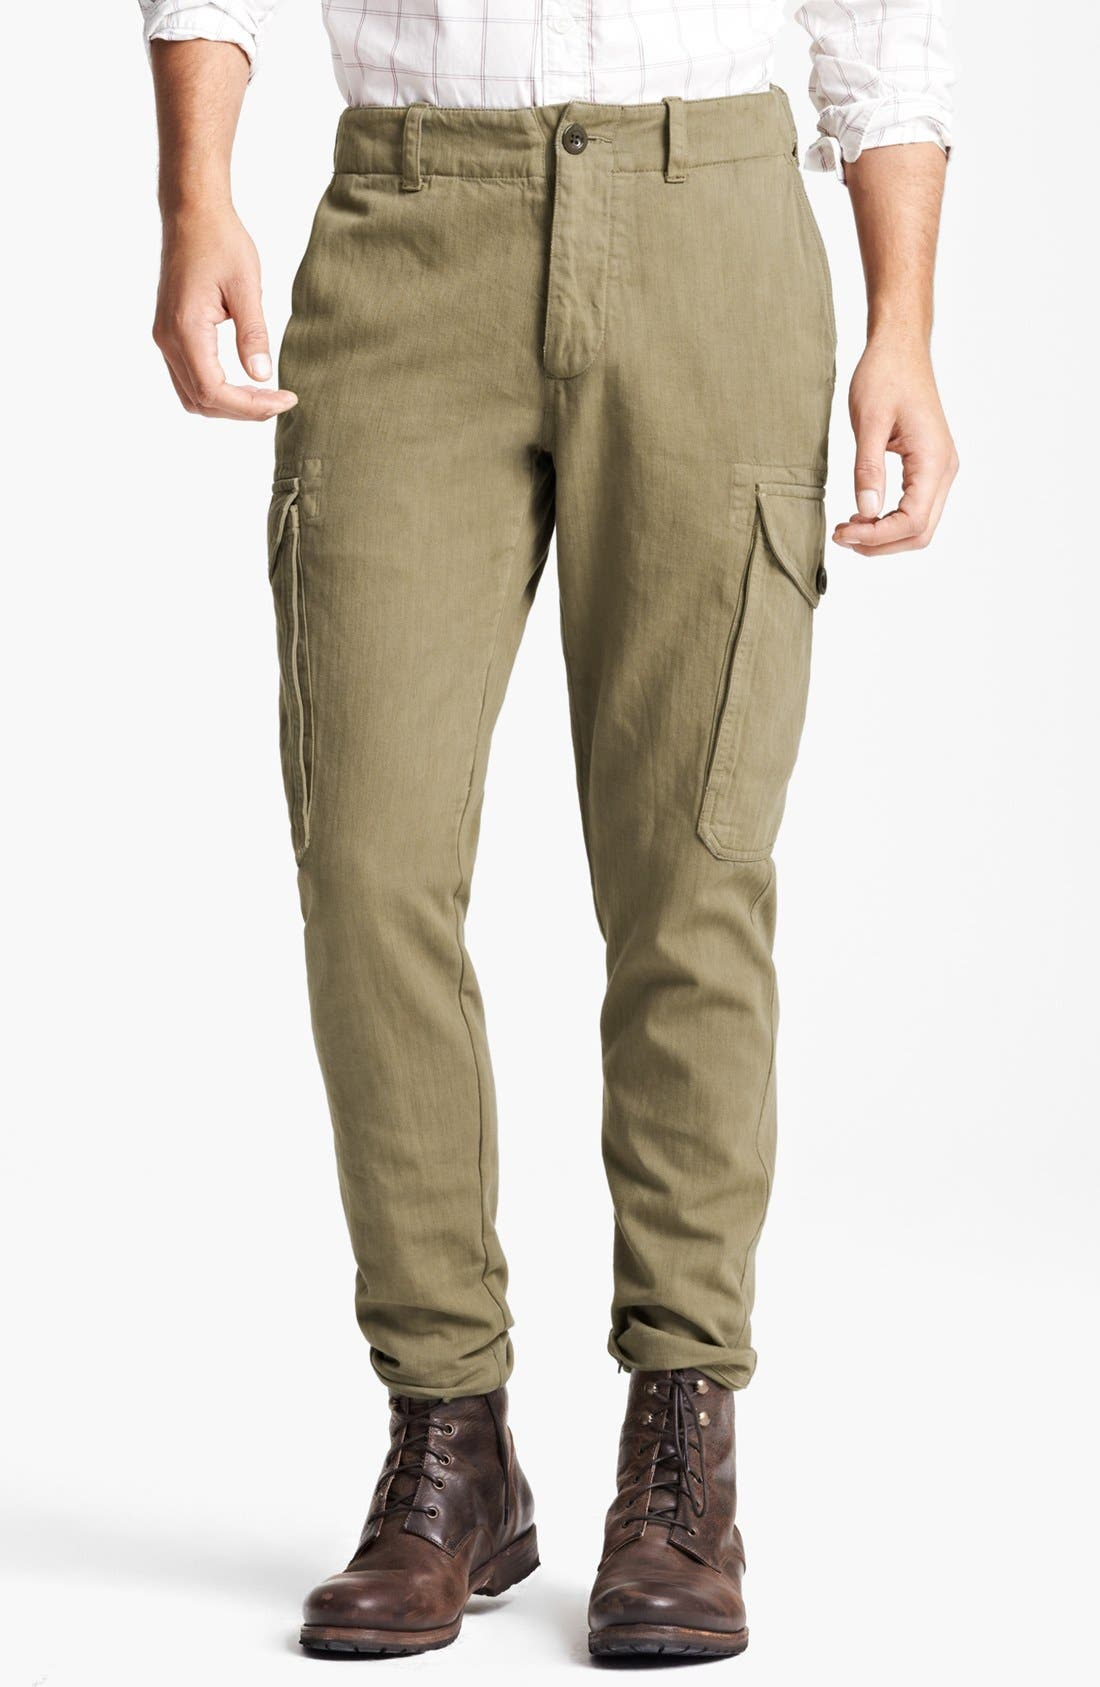 Alternate Image 1 Selected - Todd Snyder 'Infantry' Herringbone Cargo Pants